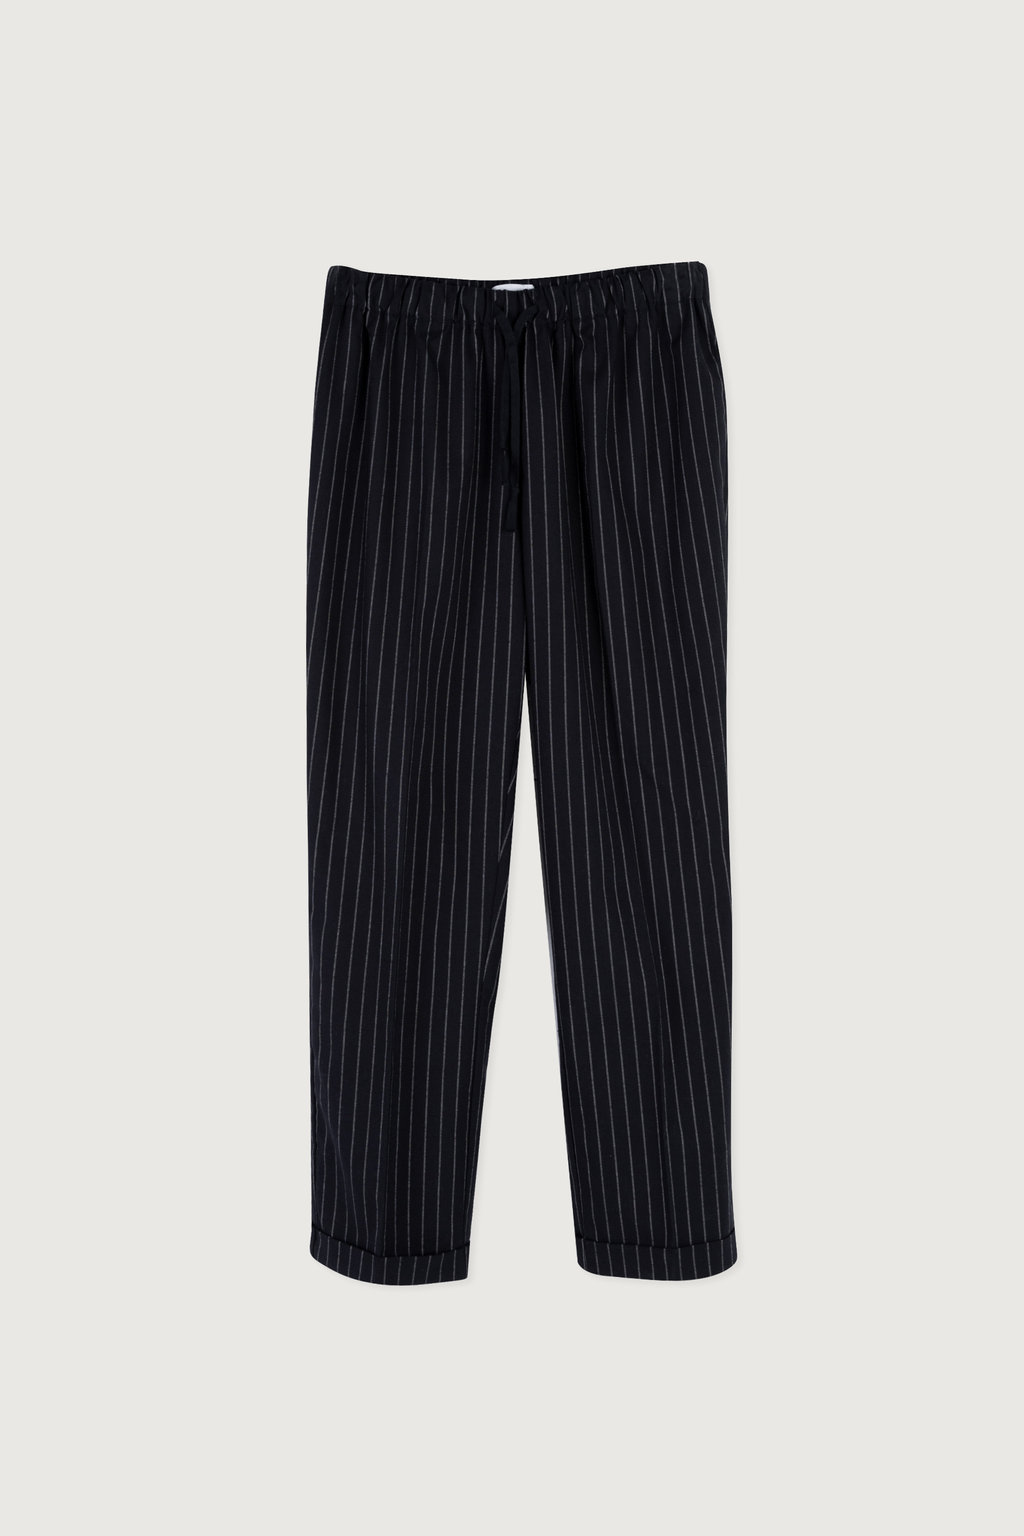 Pant 14542019 Navy Stripe 12